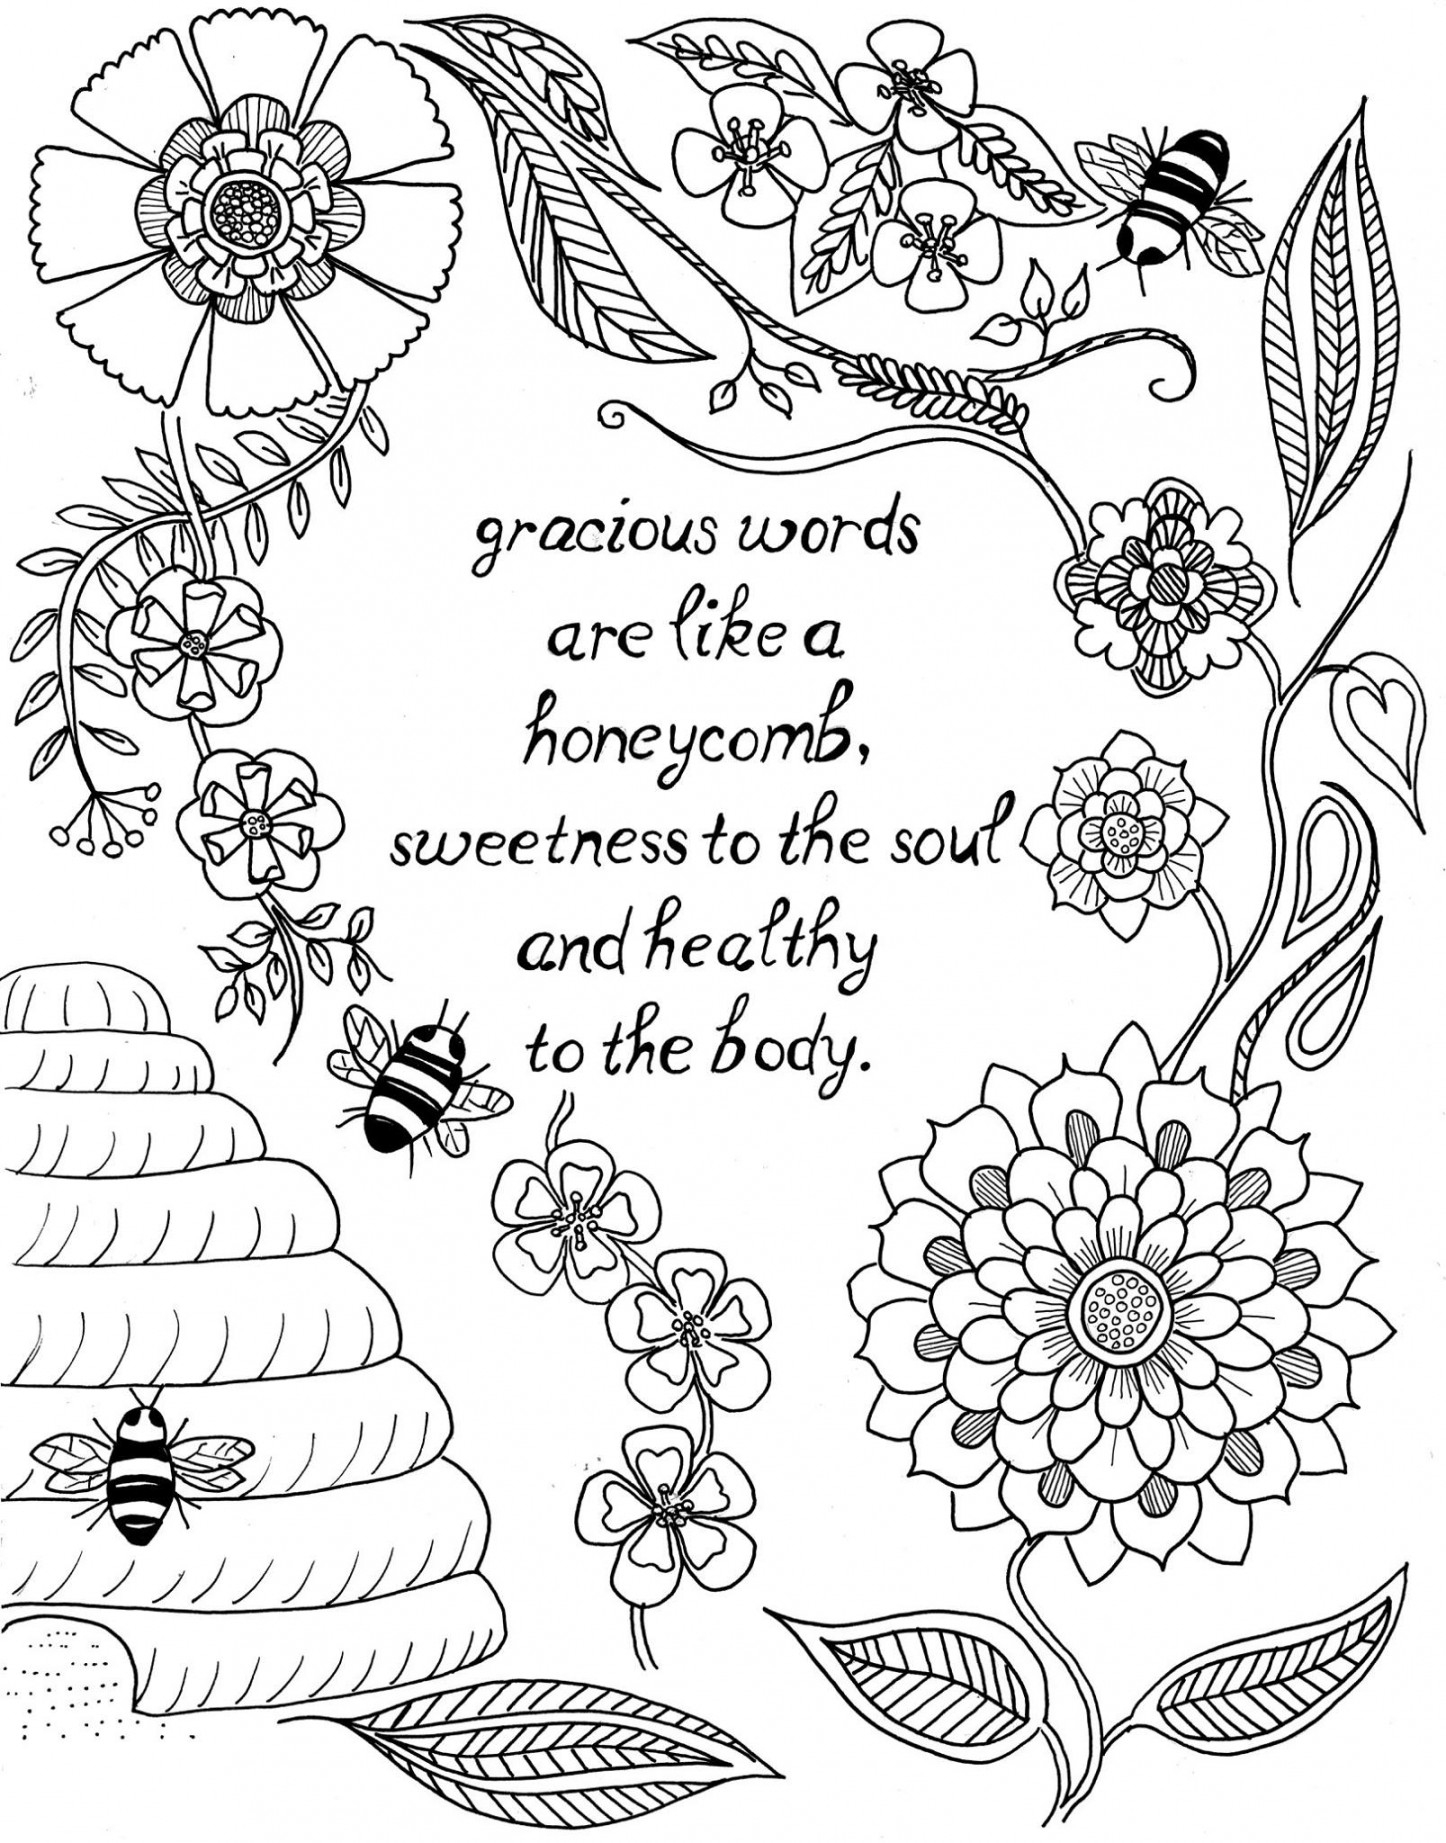 Coloring Page Quotes Images Of Inspirational Quotes Coloring Pages - Free Printable Inspirational Coloring Pages